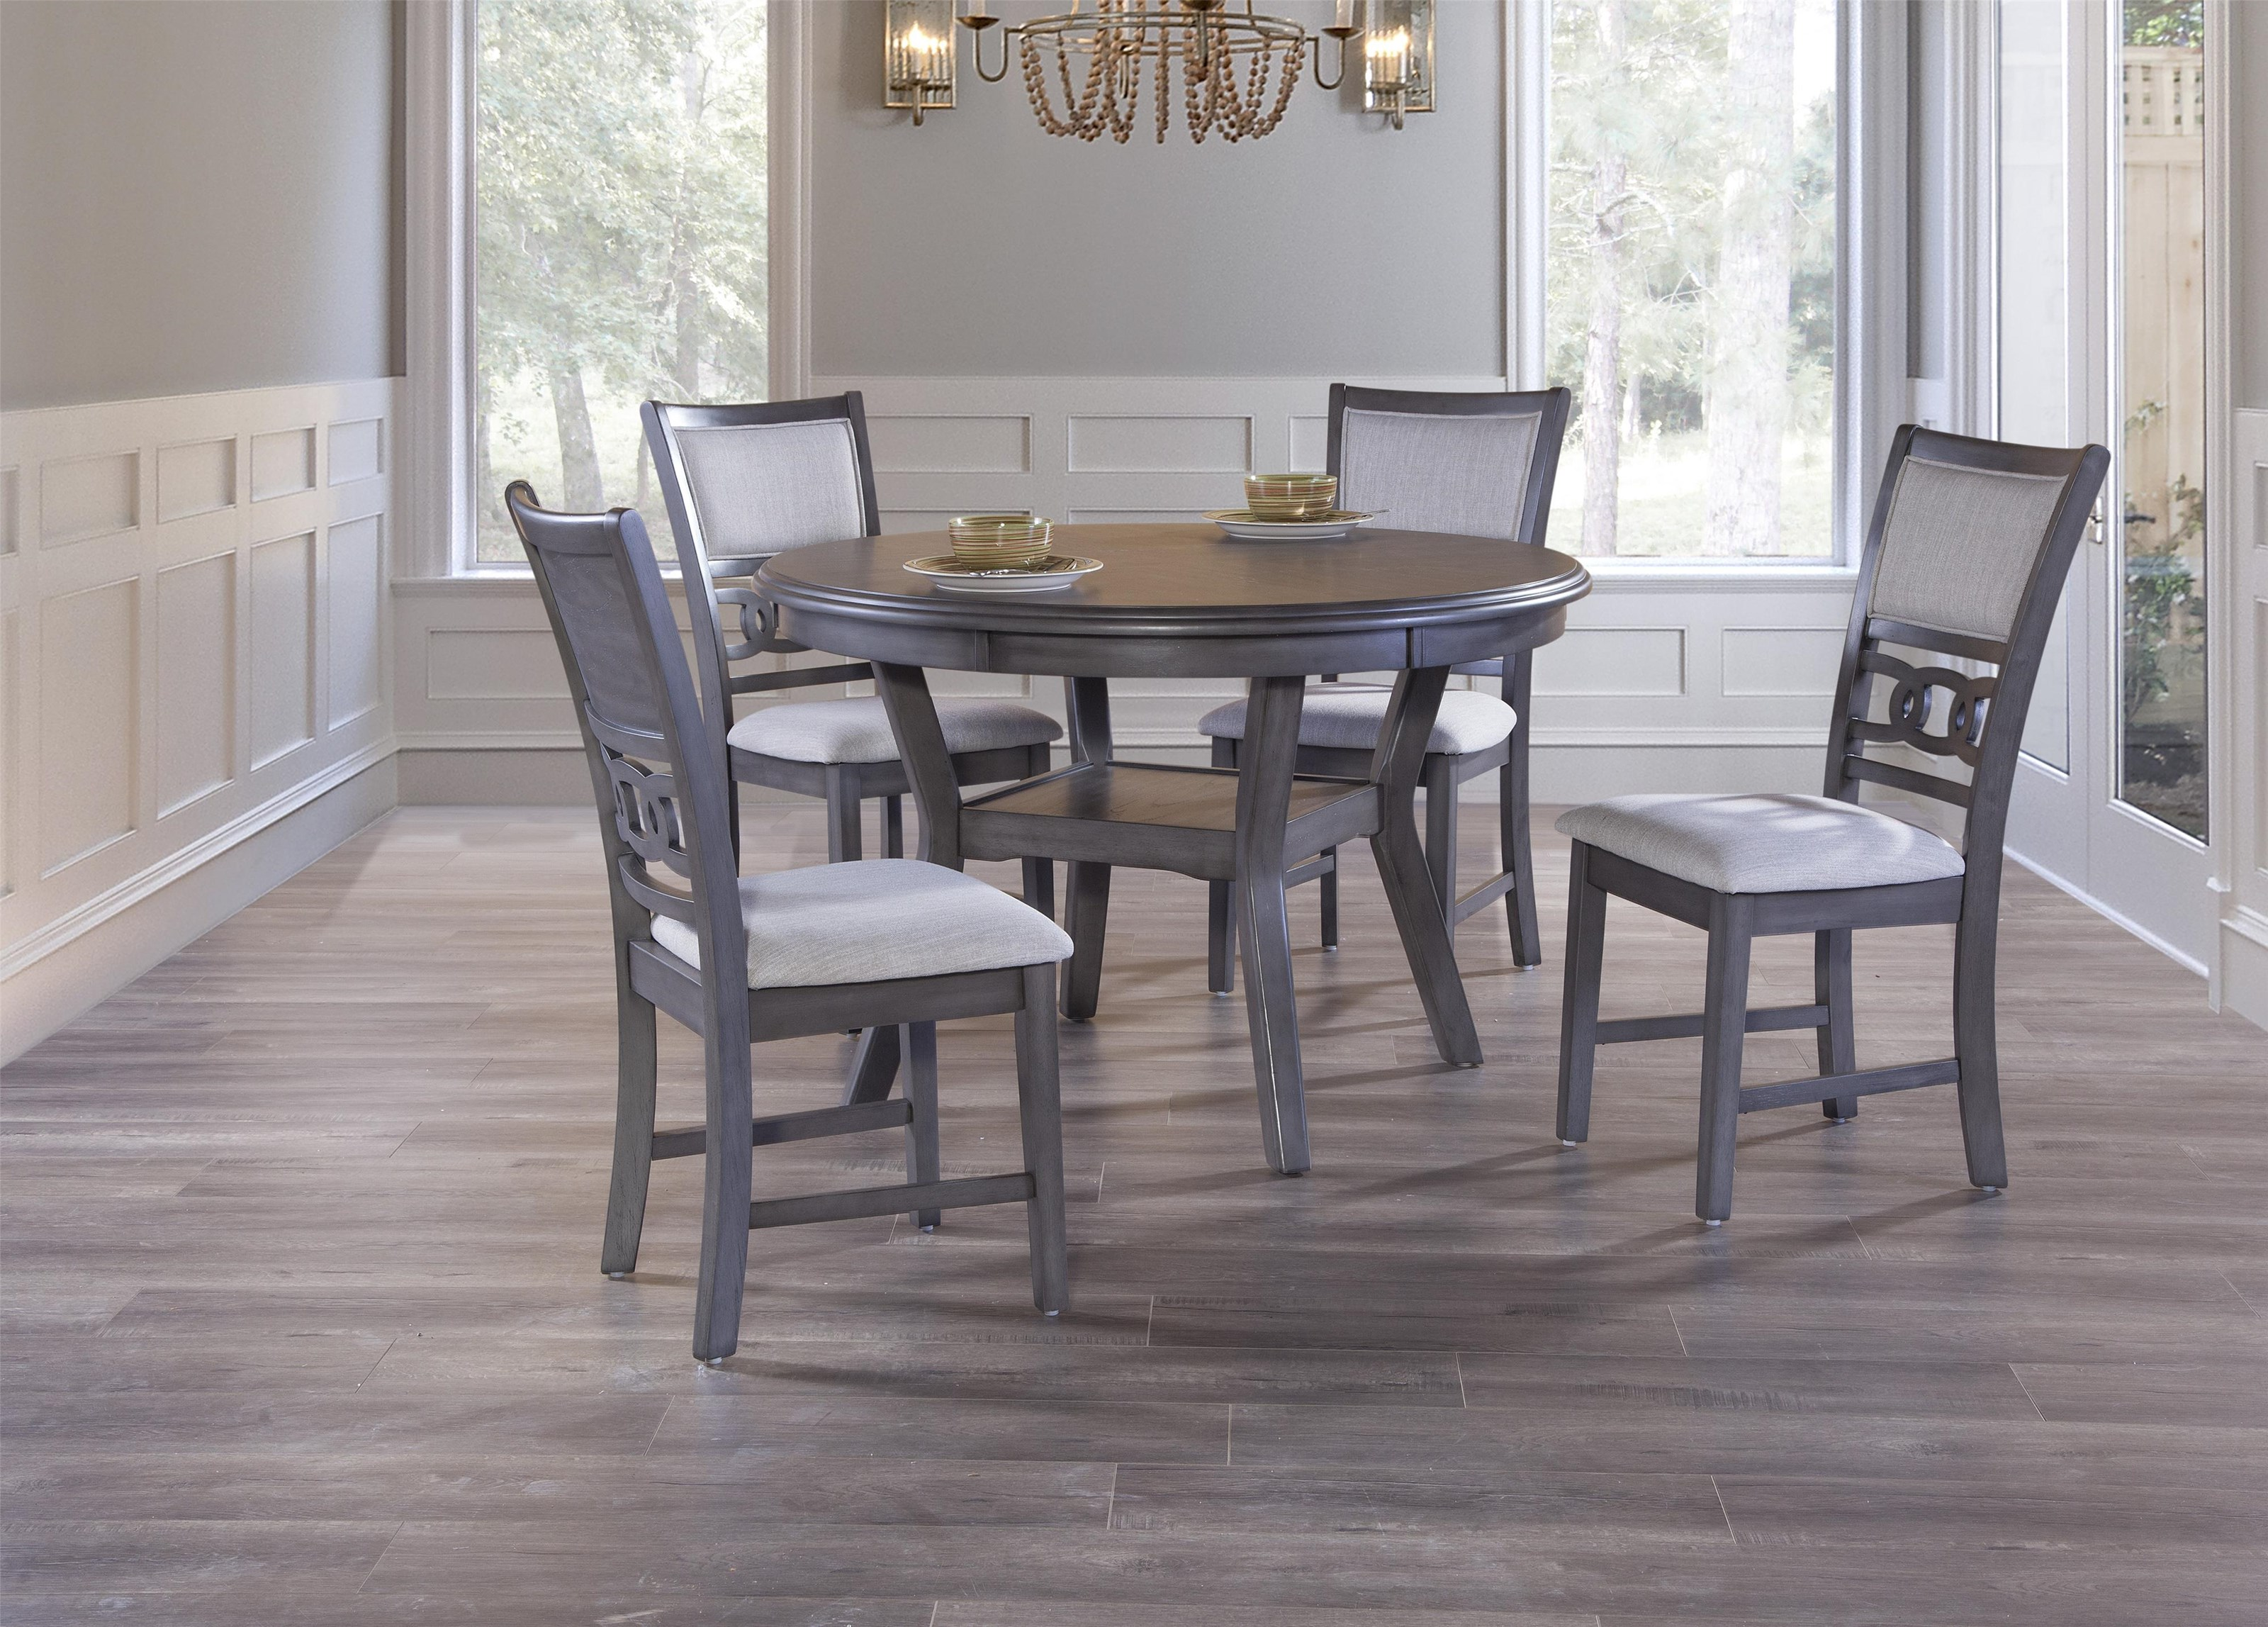 Gray Round Dining Table & 4 Chairs